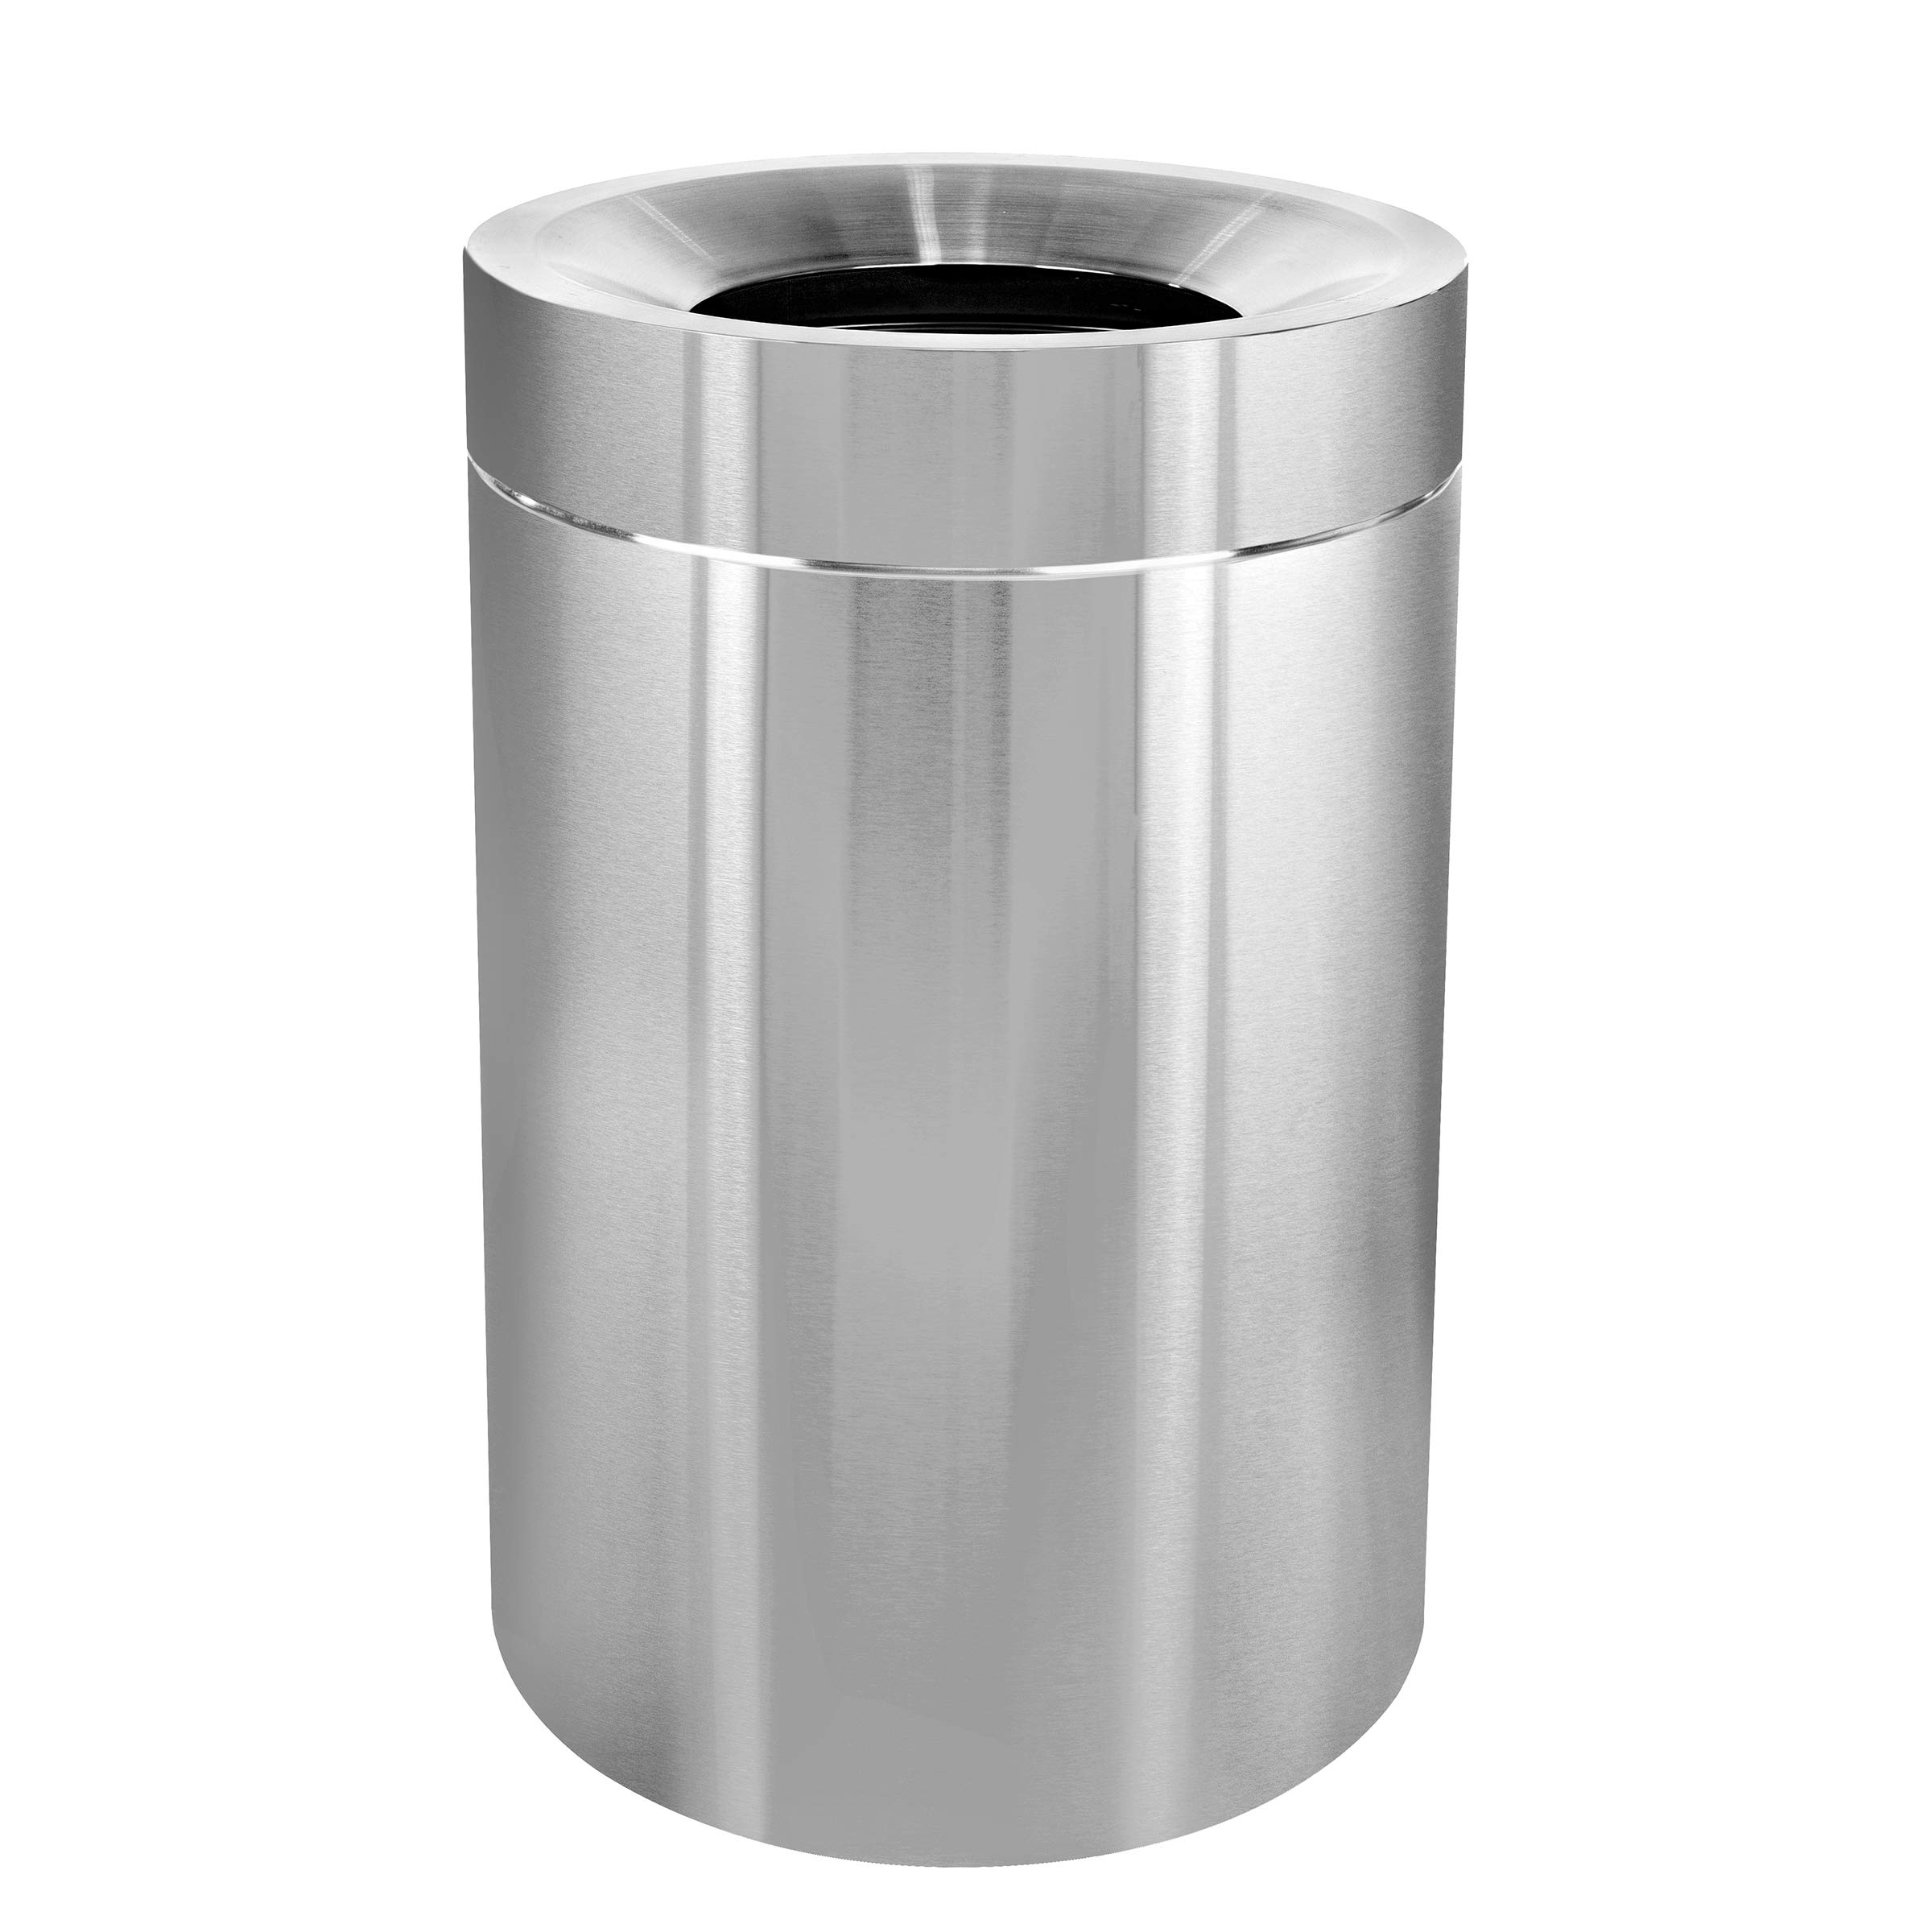 Alpine Industries 50-Gallon Indoor Trash Can - Large & Corrosion Proof Stainless Steel Garbage Bin - Heavy Duty Waste Disposal Trashcan for Litter Free Home, Schools, Hospitals and Businesses